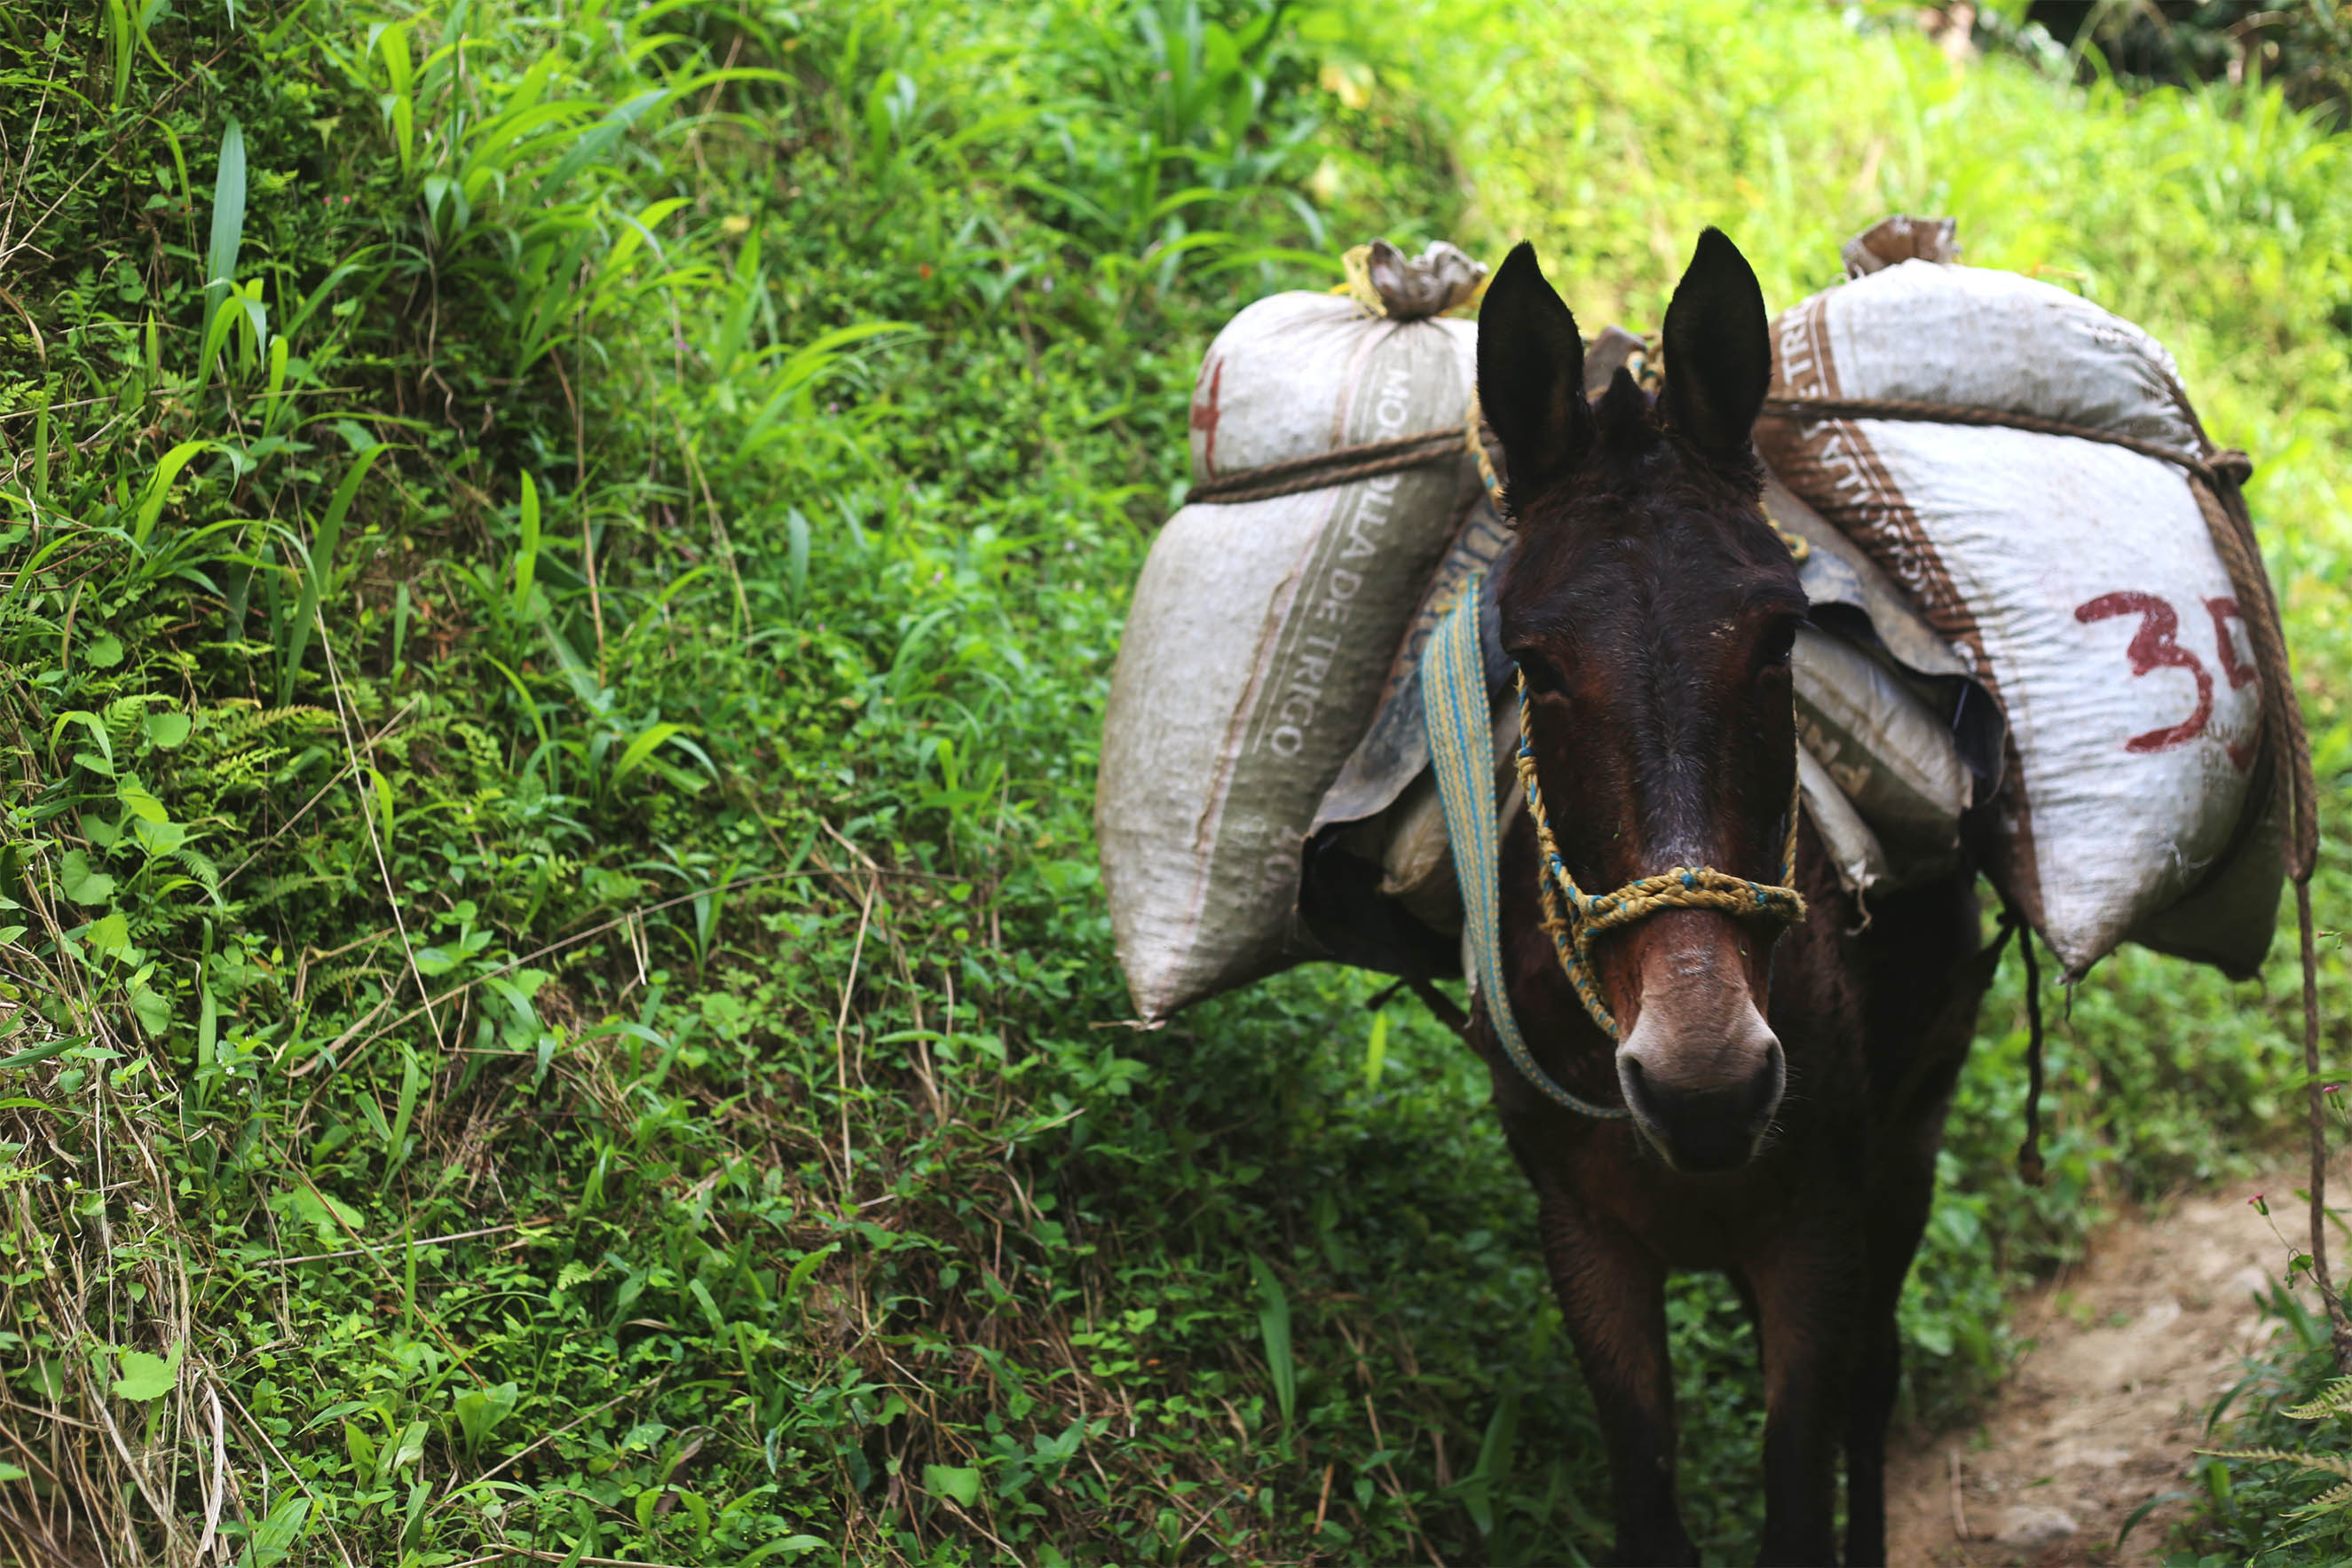 Mules bring the coffee from the plantation to the processing plant